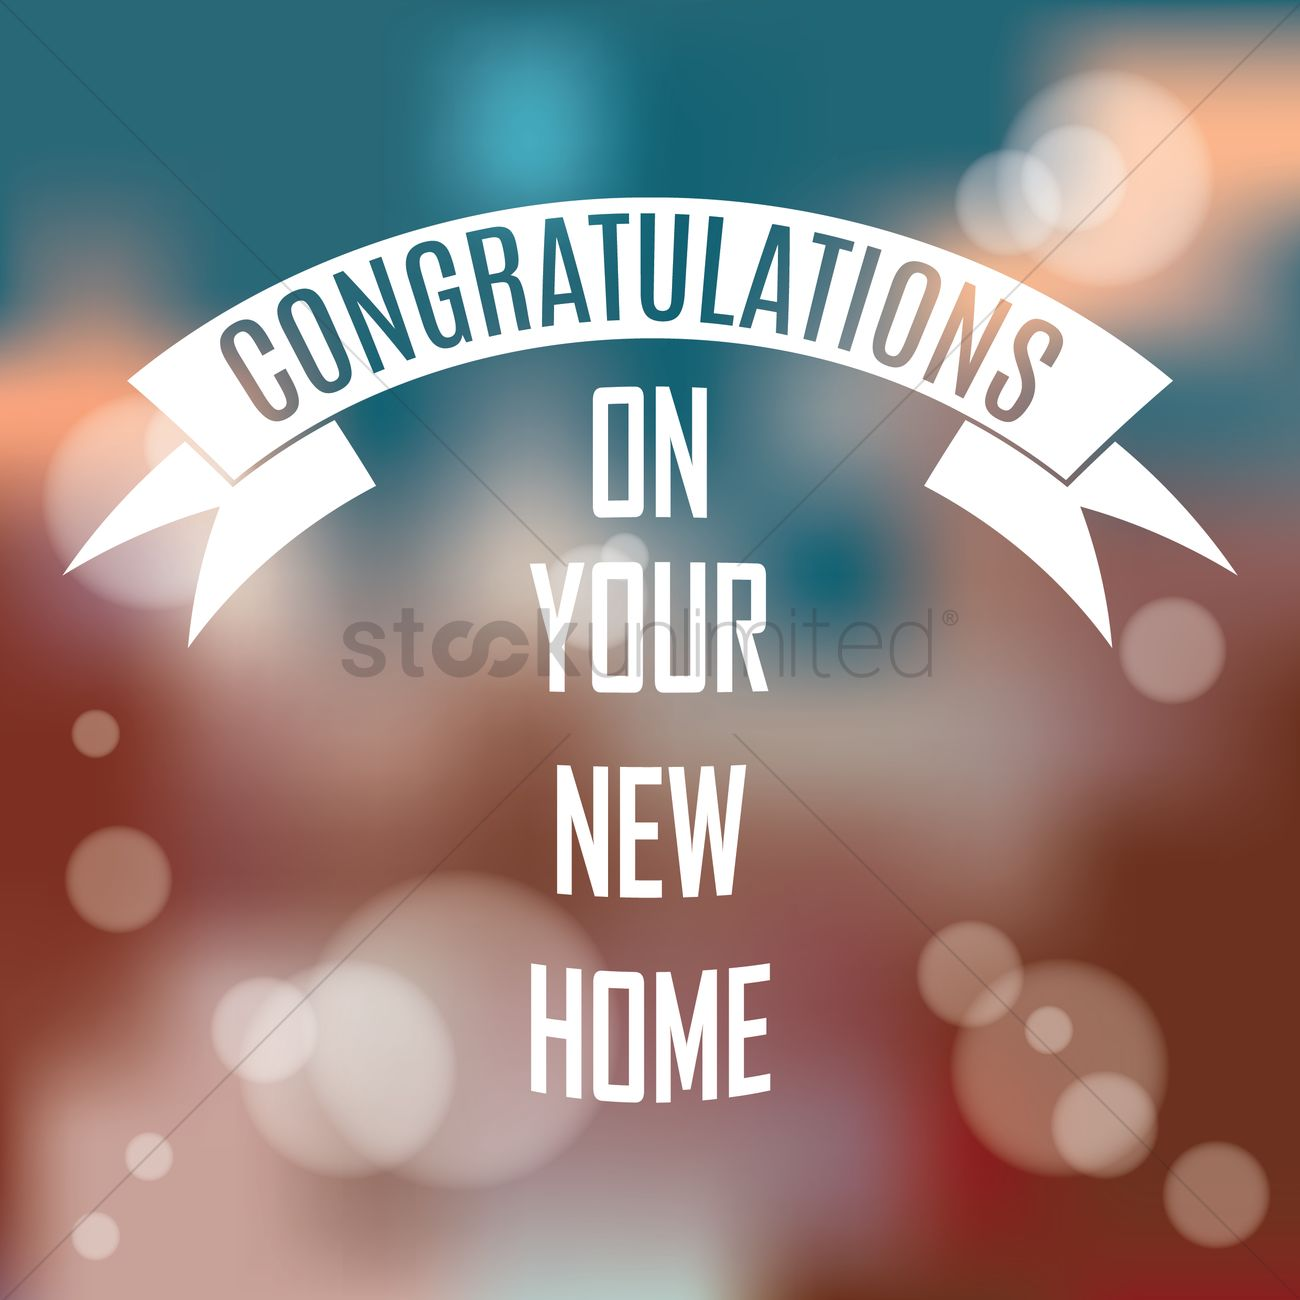 Congratulations on your new home vector image 1827438 for New home images